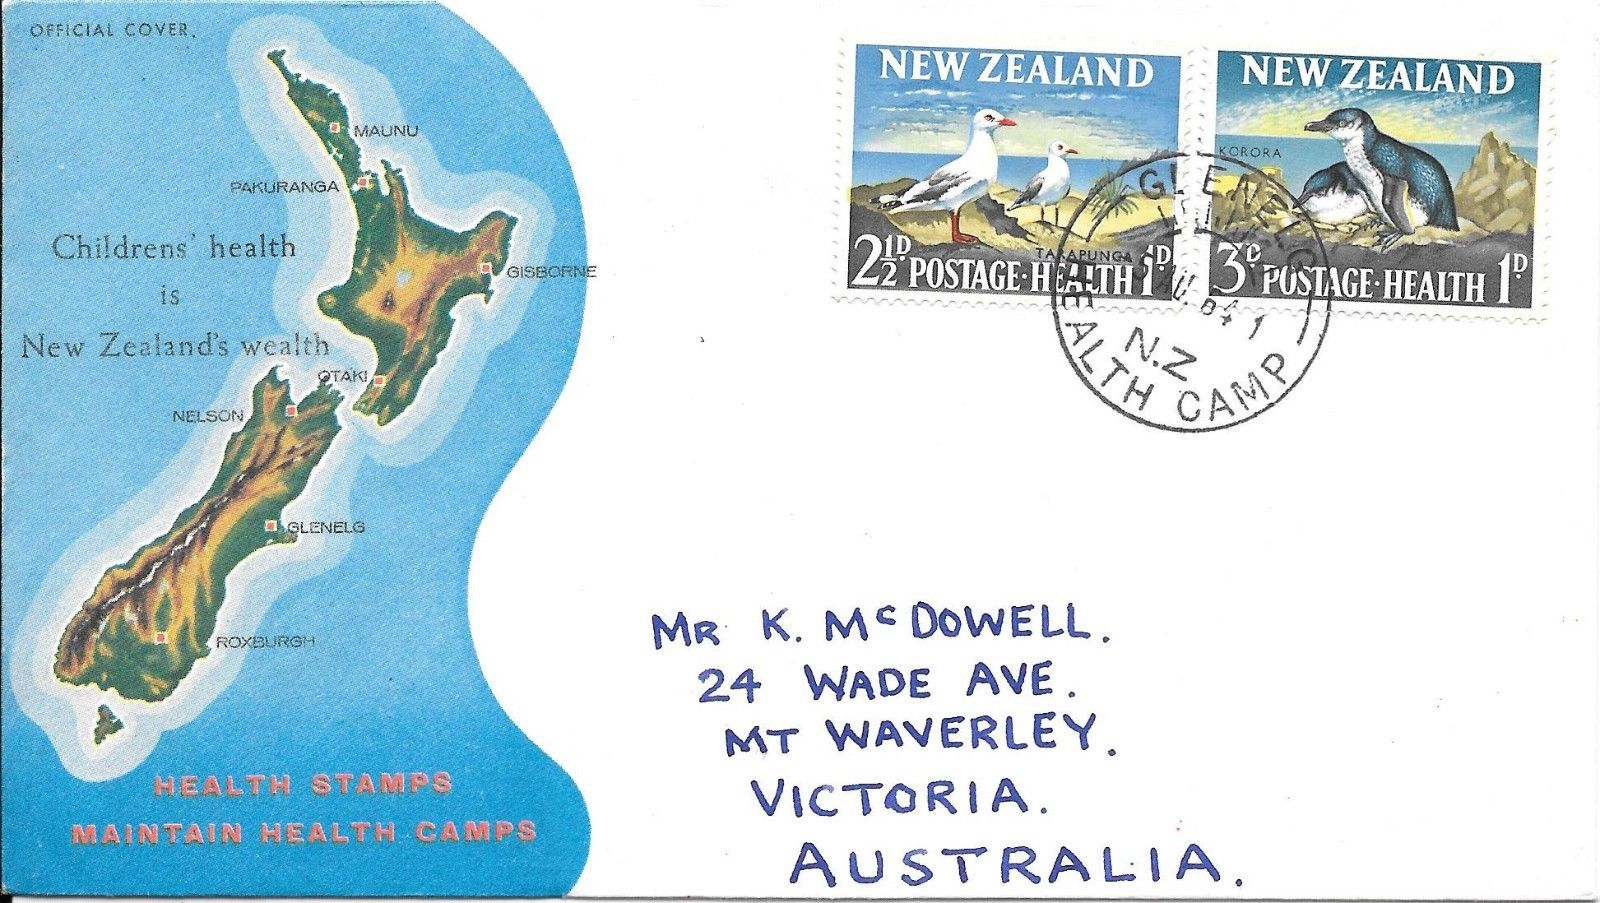 New Zealand - Scott #B67-B68 (1964) - first day cover postmarked at Glenelg Health Camp, New Zealand. Glenelg Children's Health Camp was situated above the hillside suburb of Murray Aynsley Hill in Christchurch. The school for children with behavioral problems was officially opened in April 1945 and closed by the Minister of Education, Anne Tolley, in January 2012.